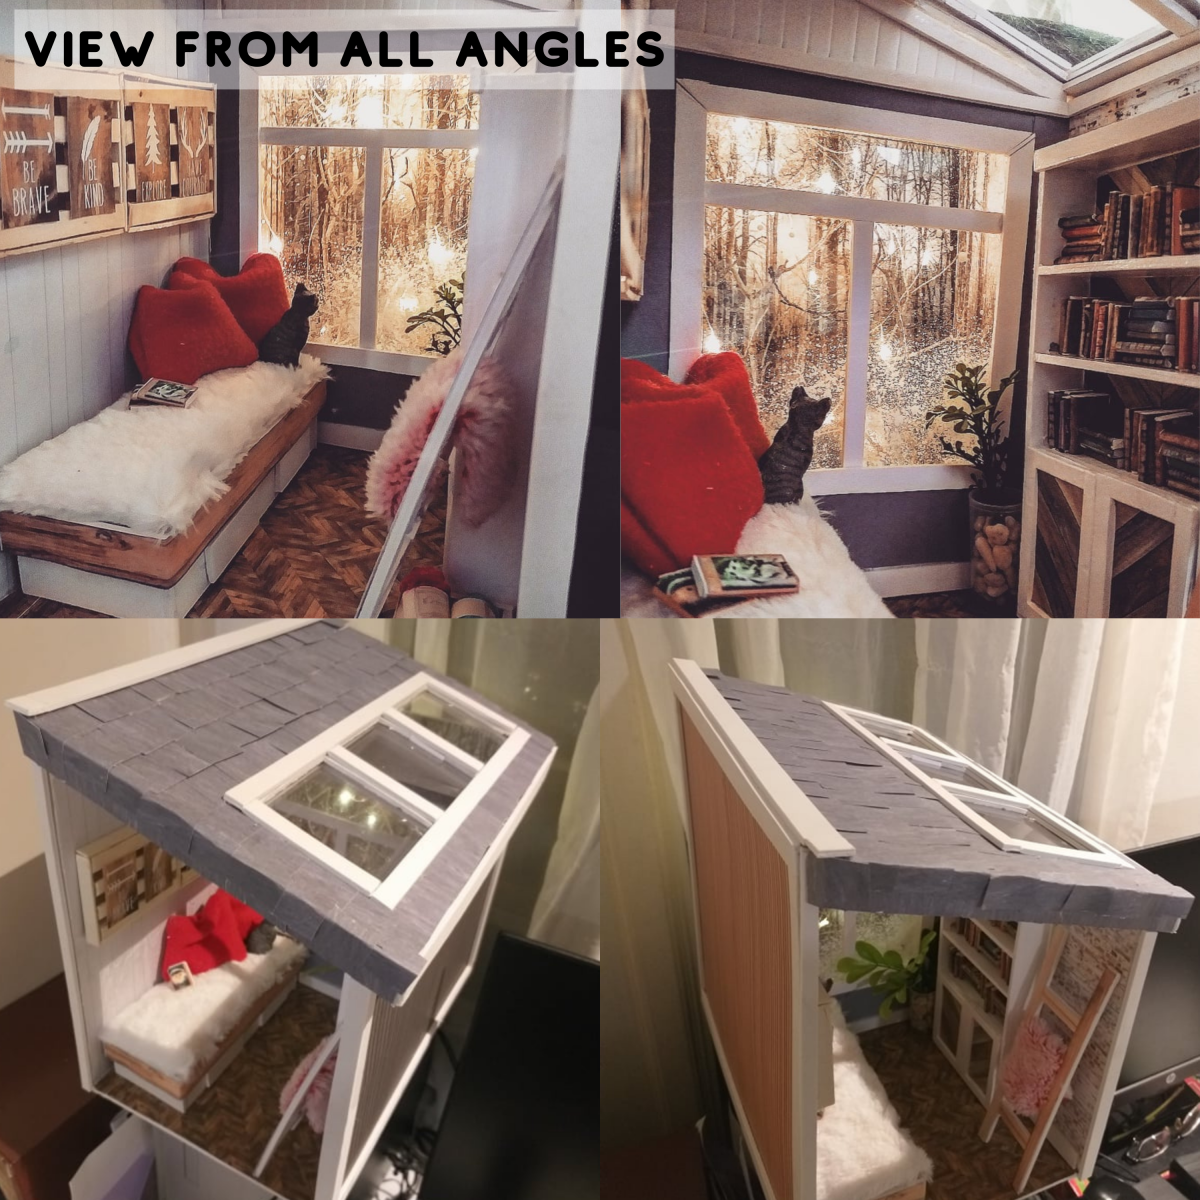 View of the book nook from all angles